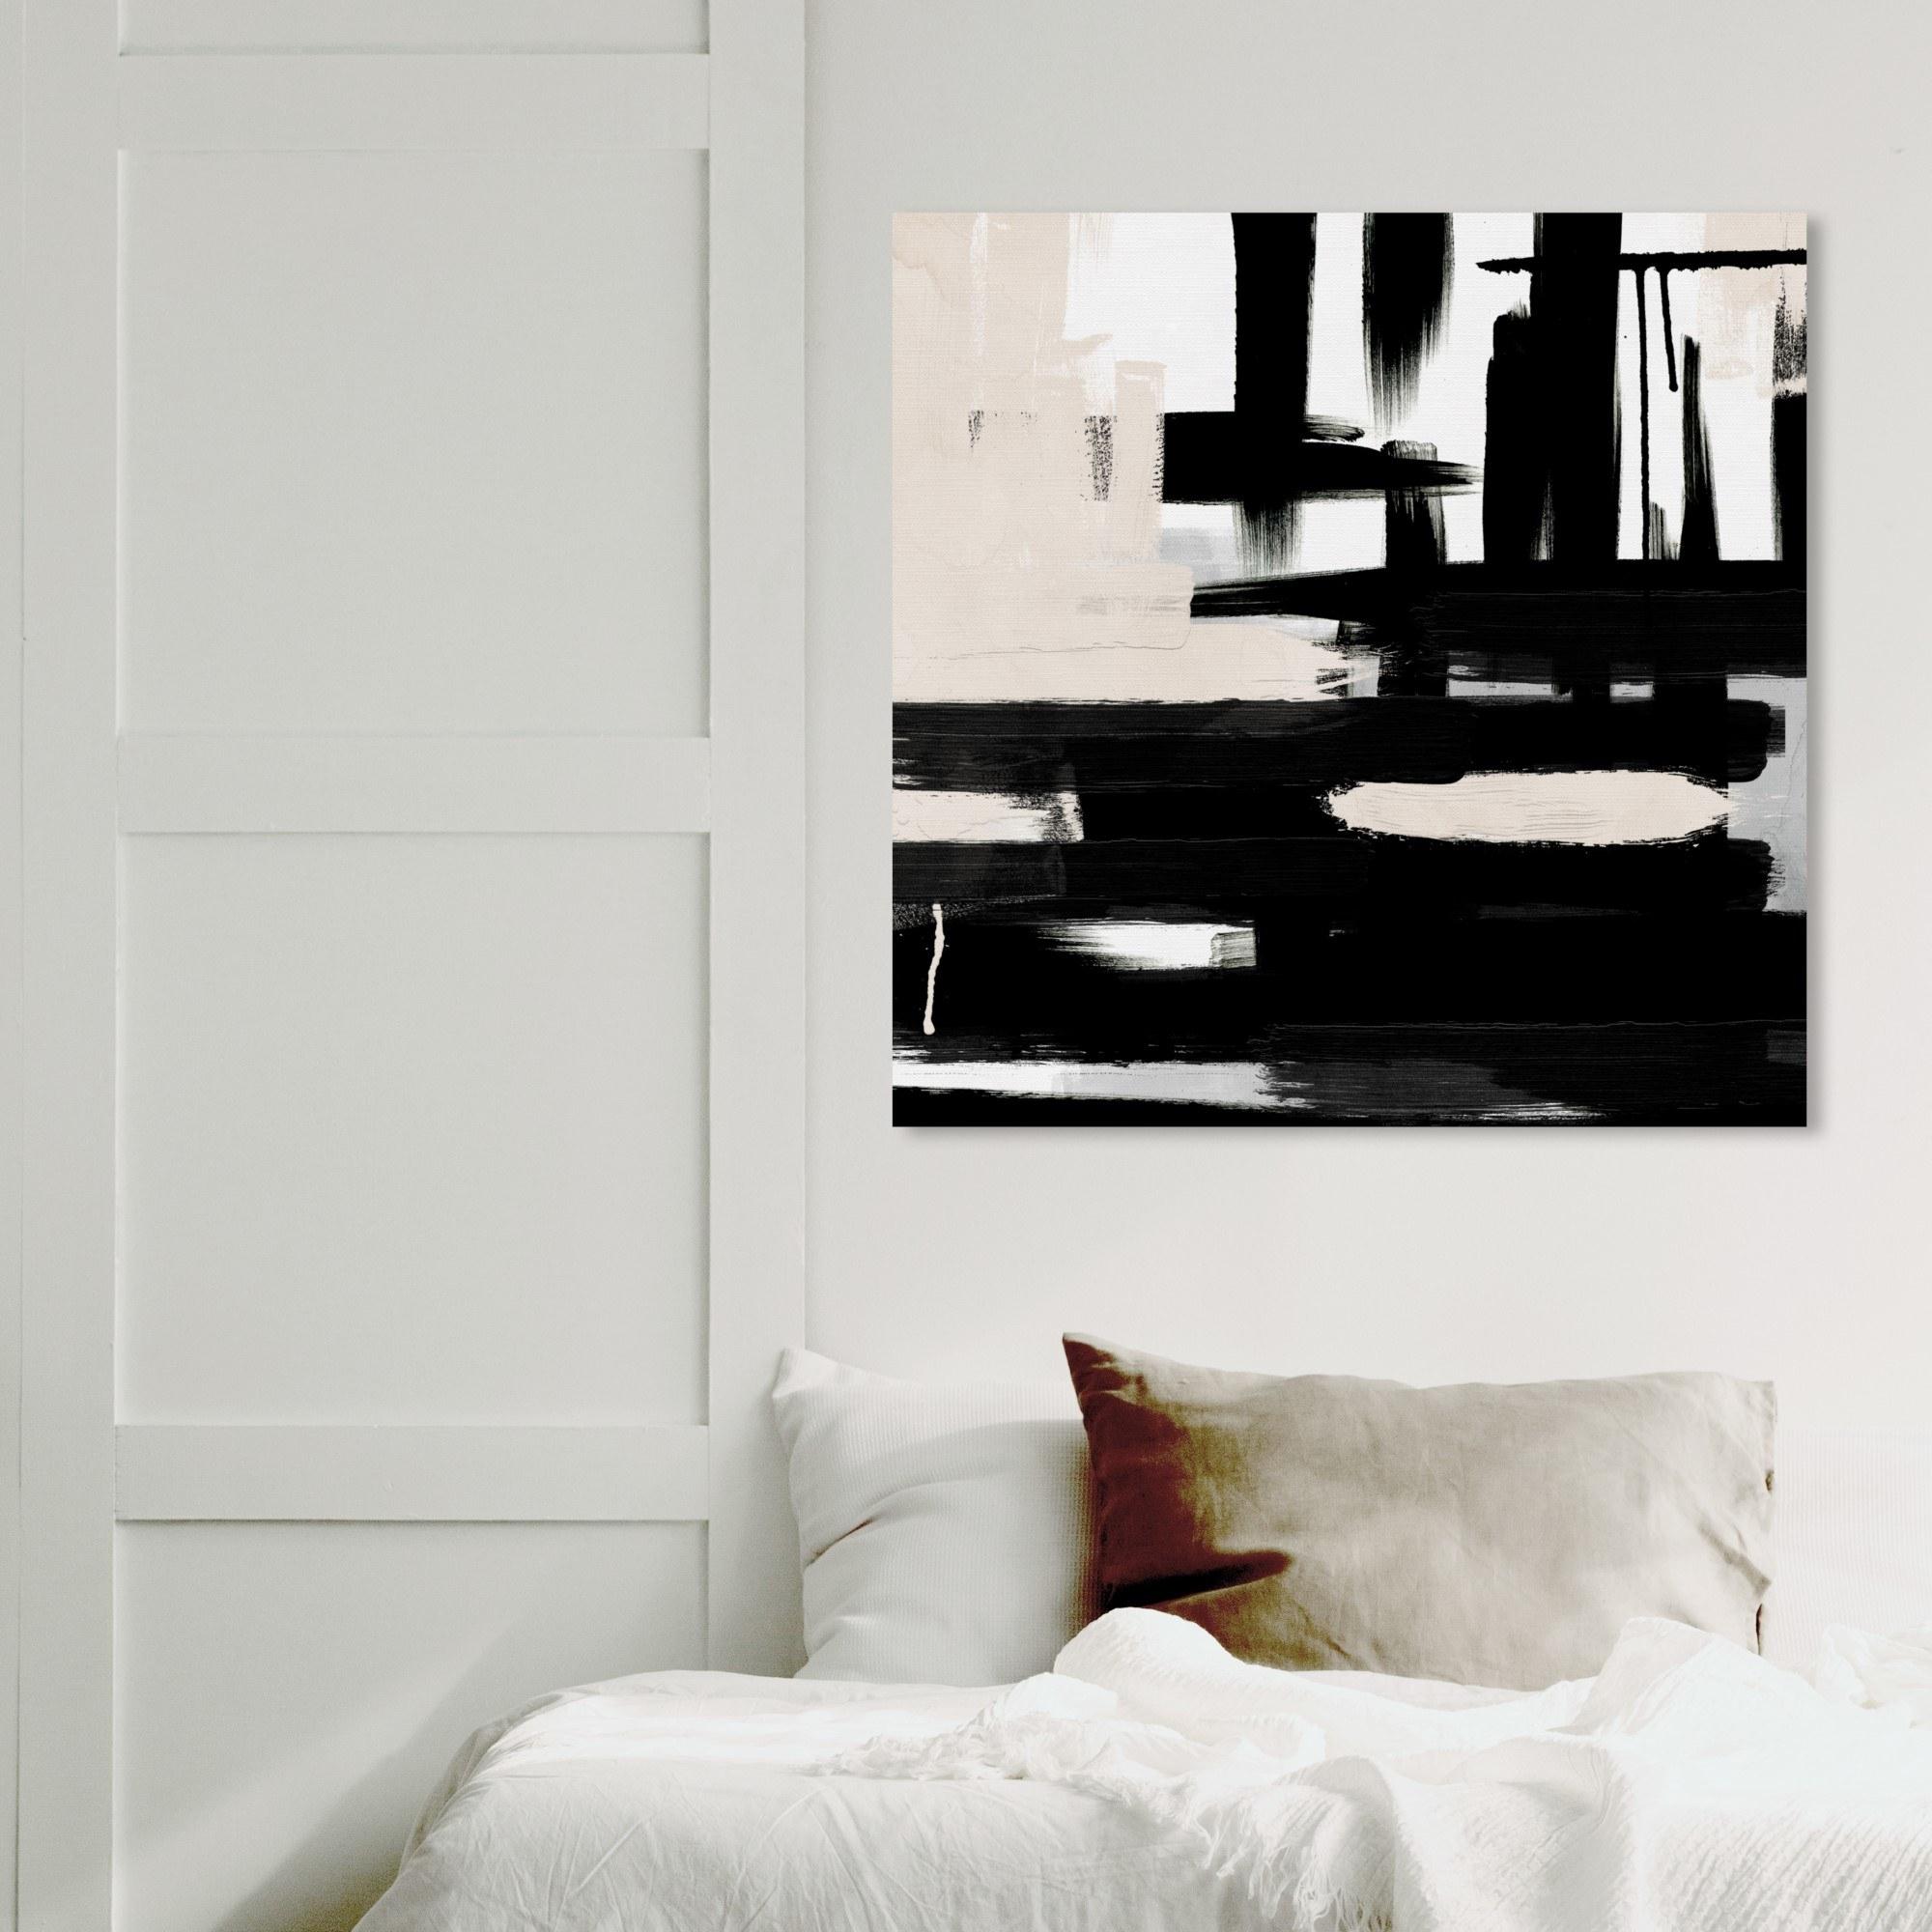 The black and white painting hanging